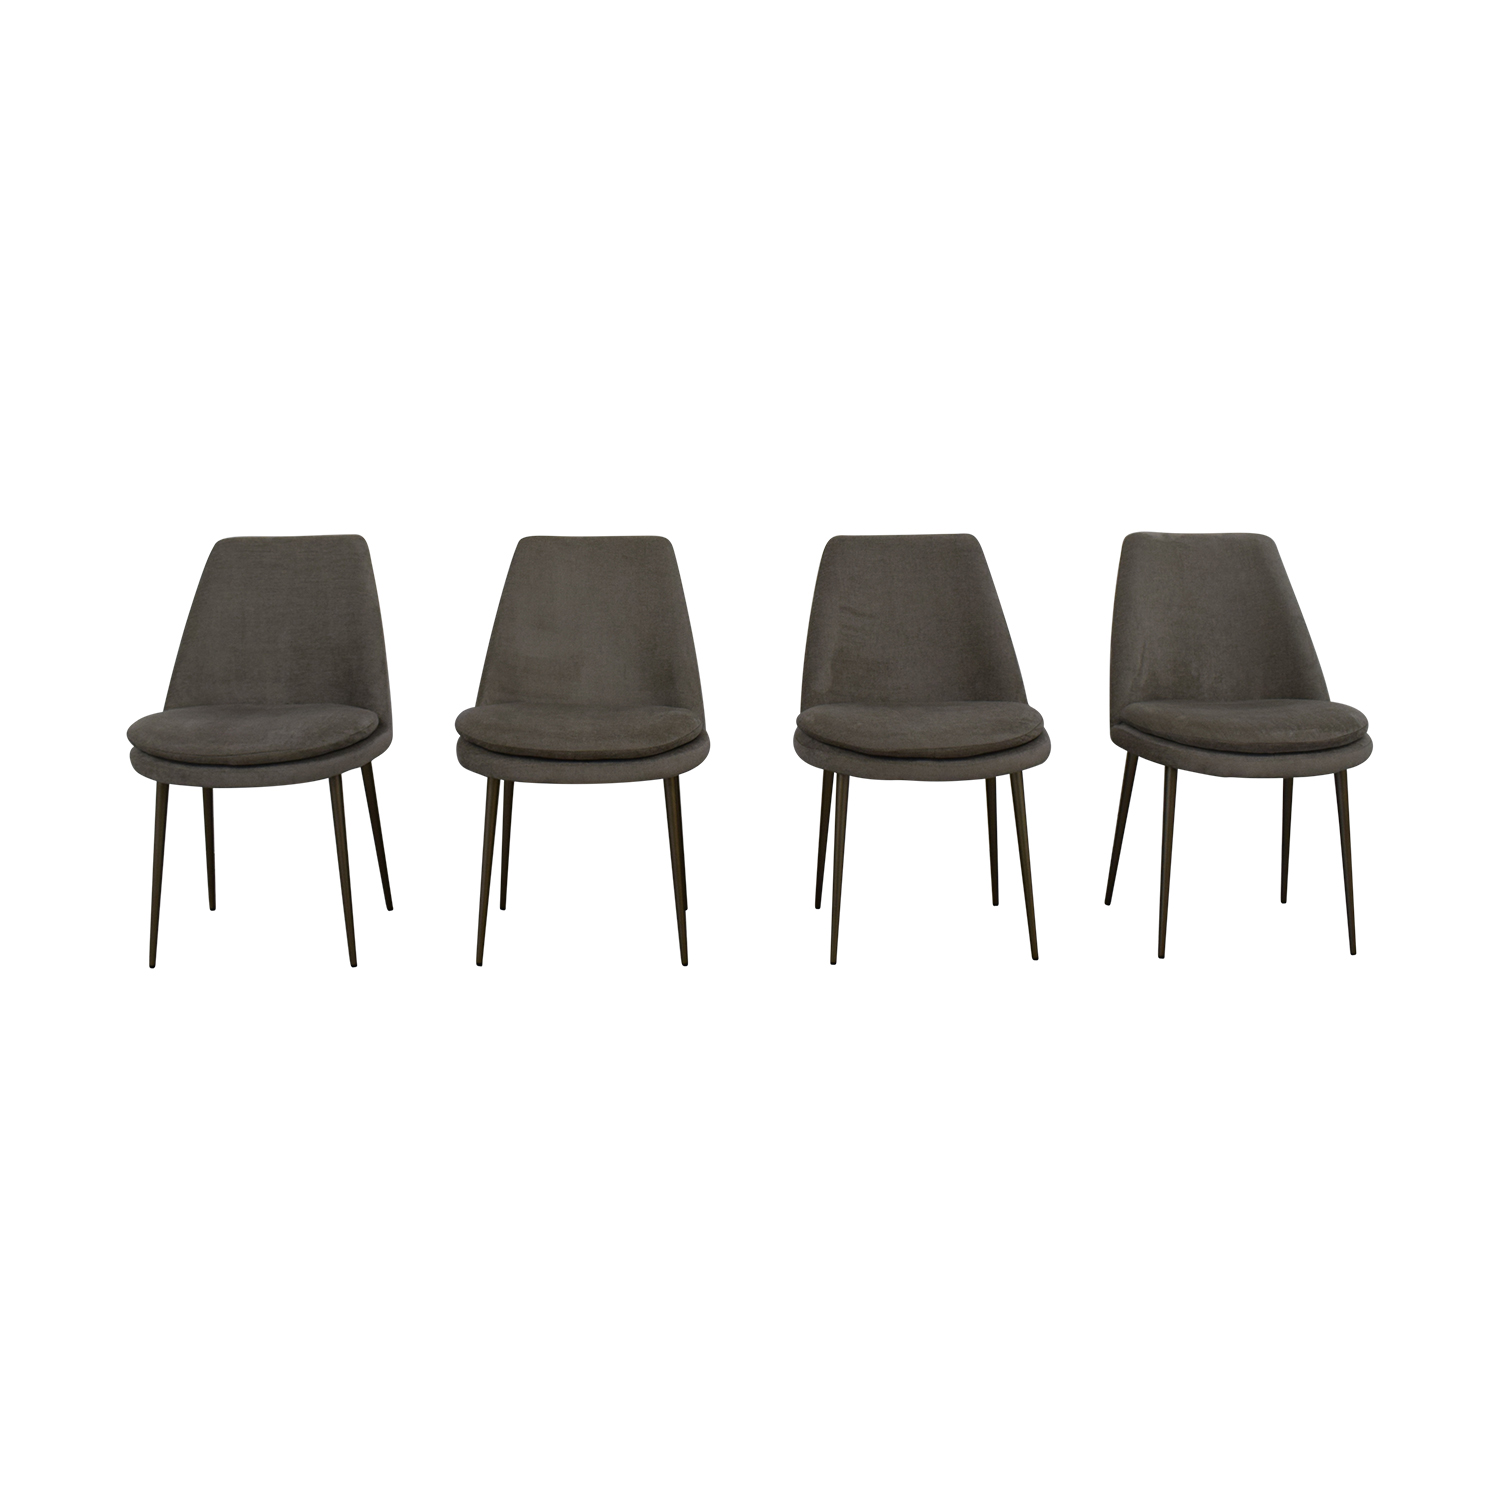 West Elm Finley Low Back Dining Chairs / Chairs